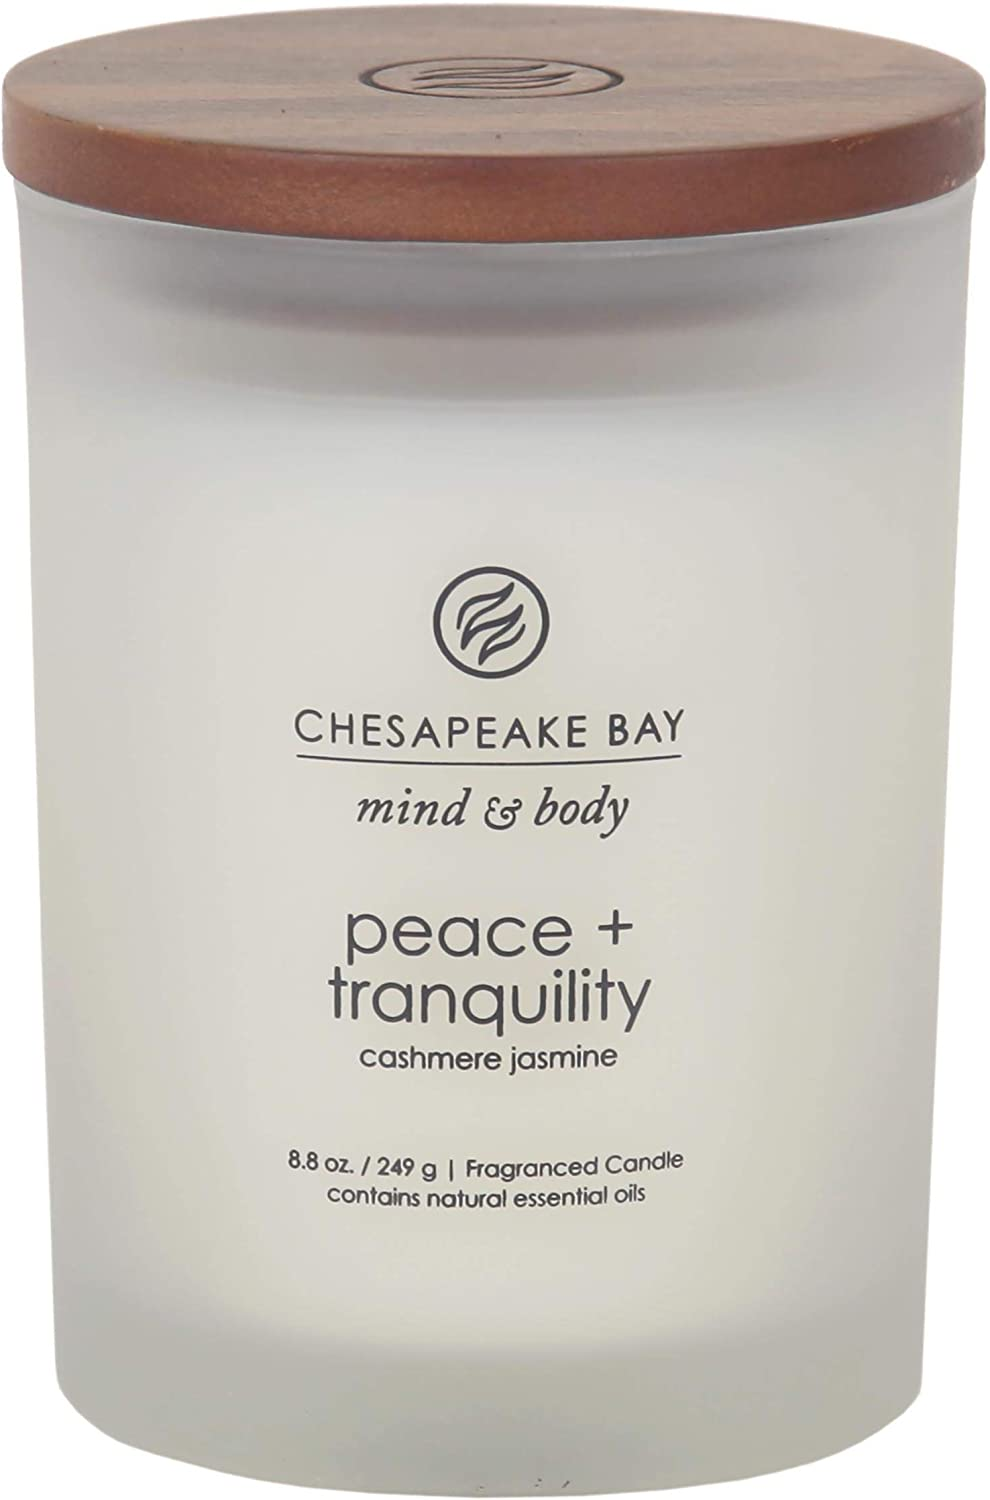 Chesapeake Bay Candle Scented Candle, Peace + Tranquility (Cashmere Jasmine), Medium